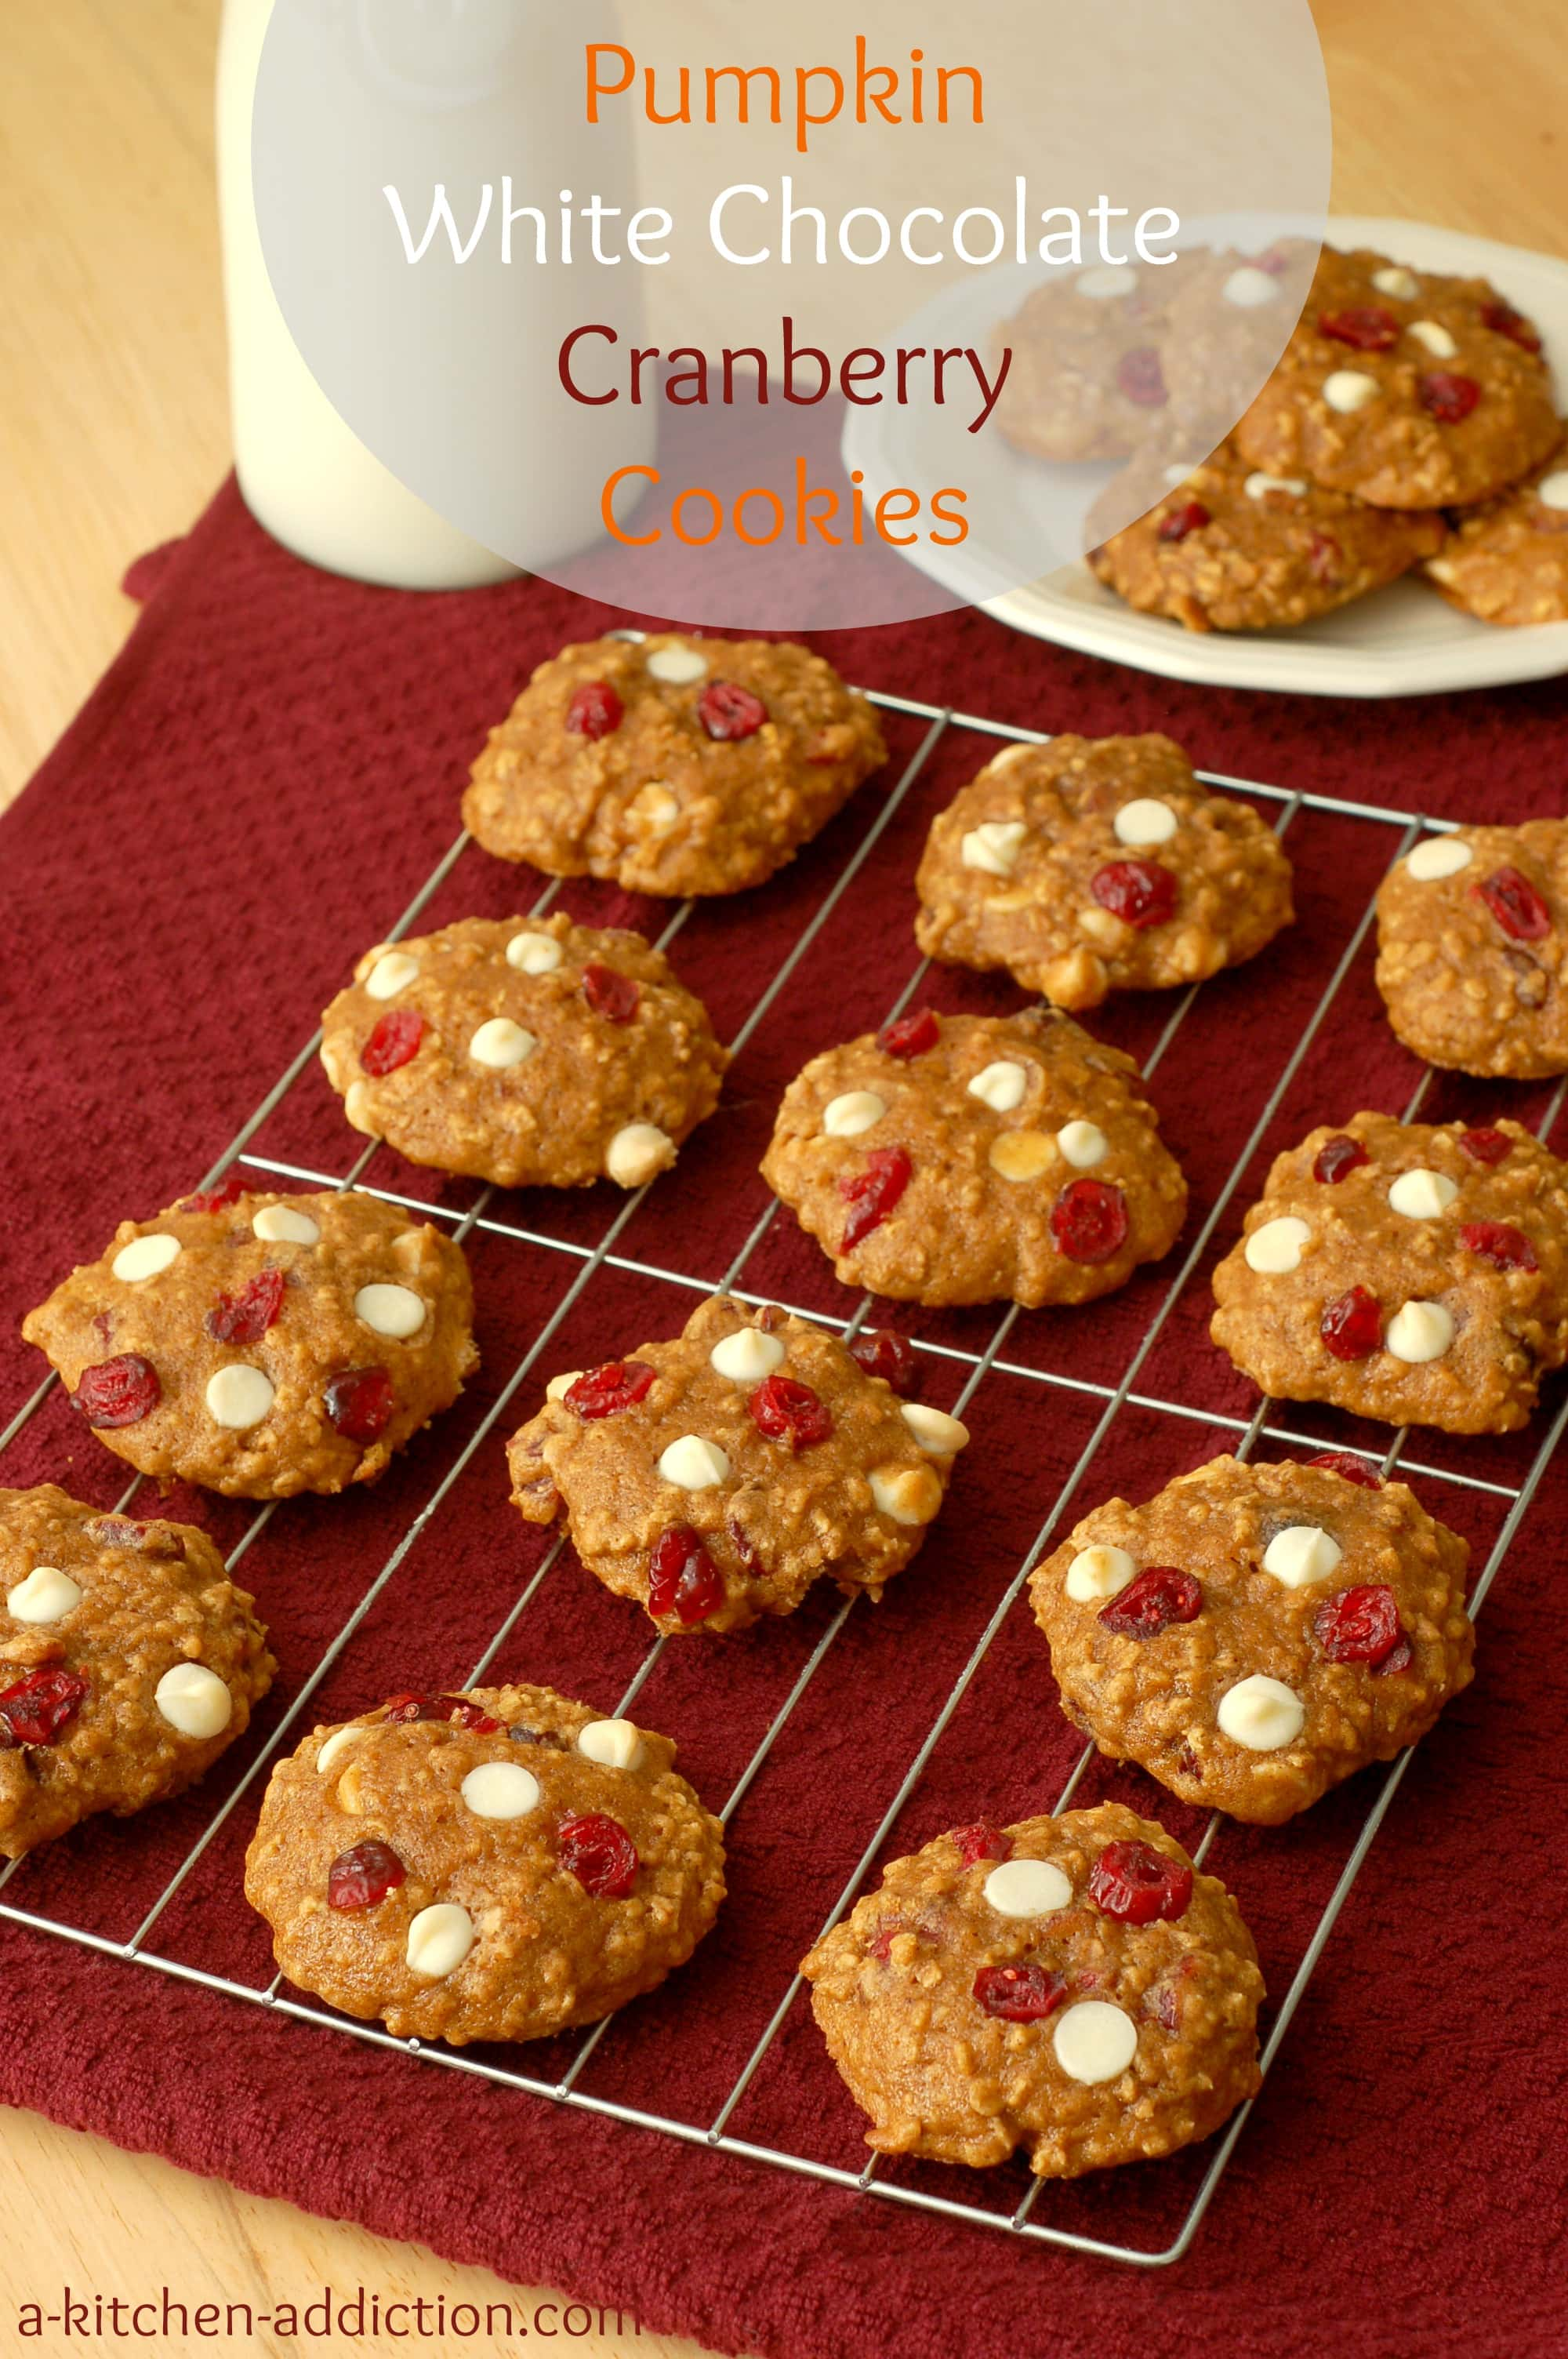 Pumpkin White Chocolate Cranberry Cookies - A Kitchen Addiction